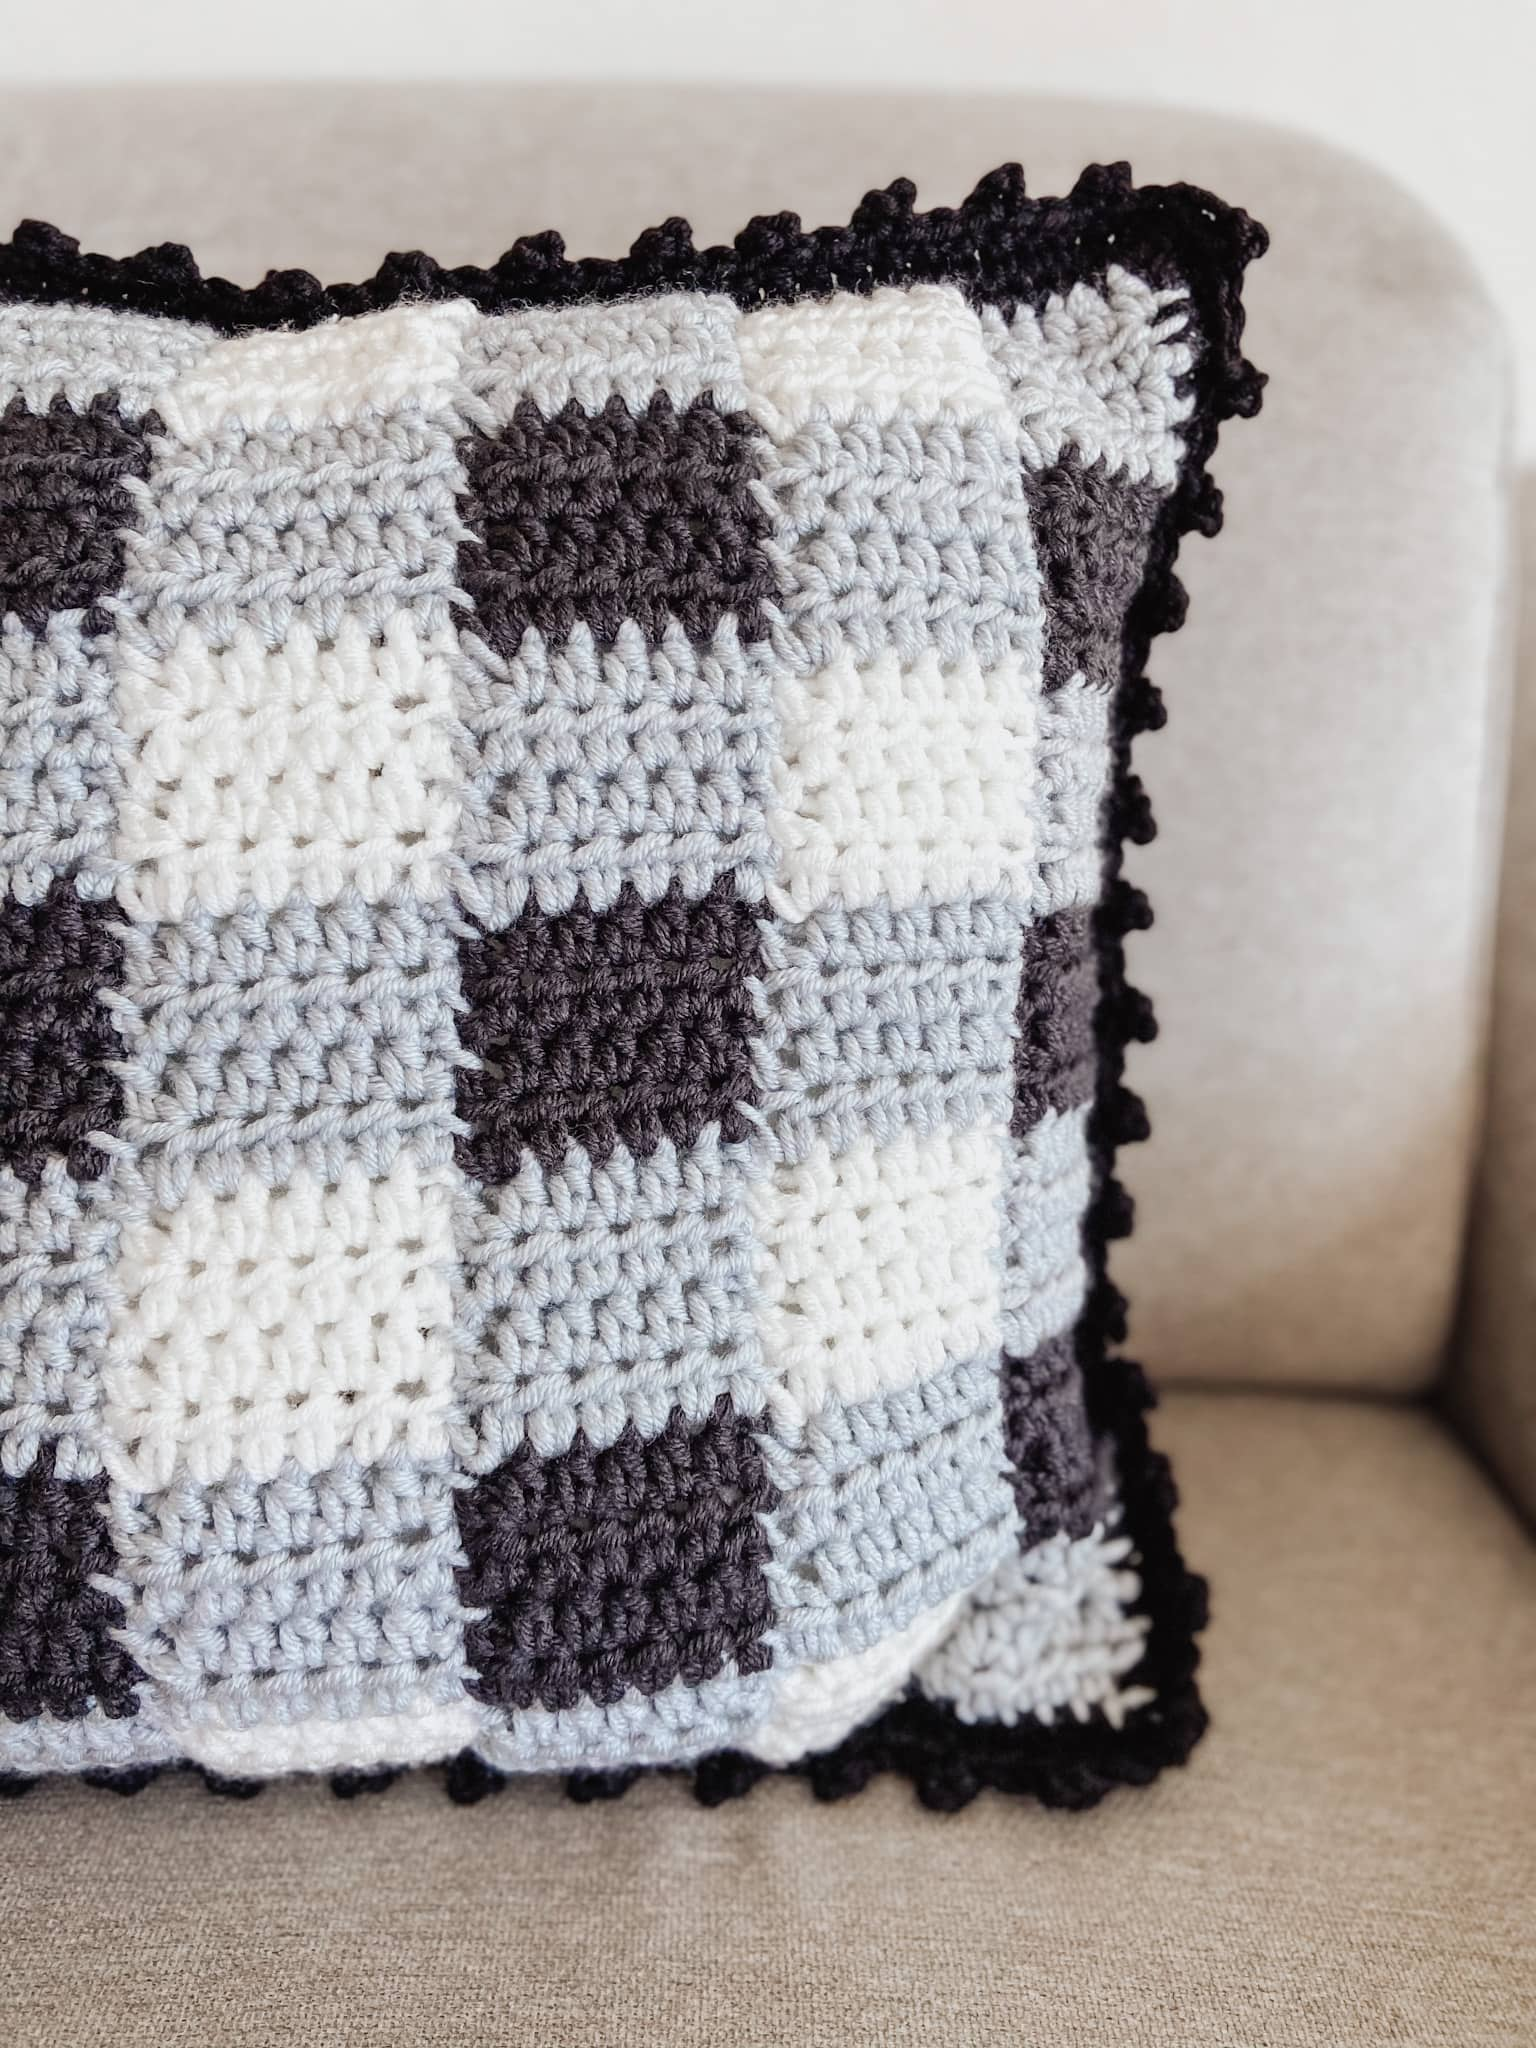 Simple Gingham Crochet Pillow Cover | FREE PATTERN